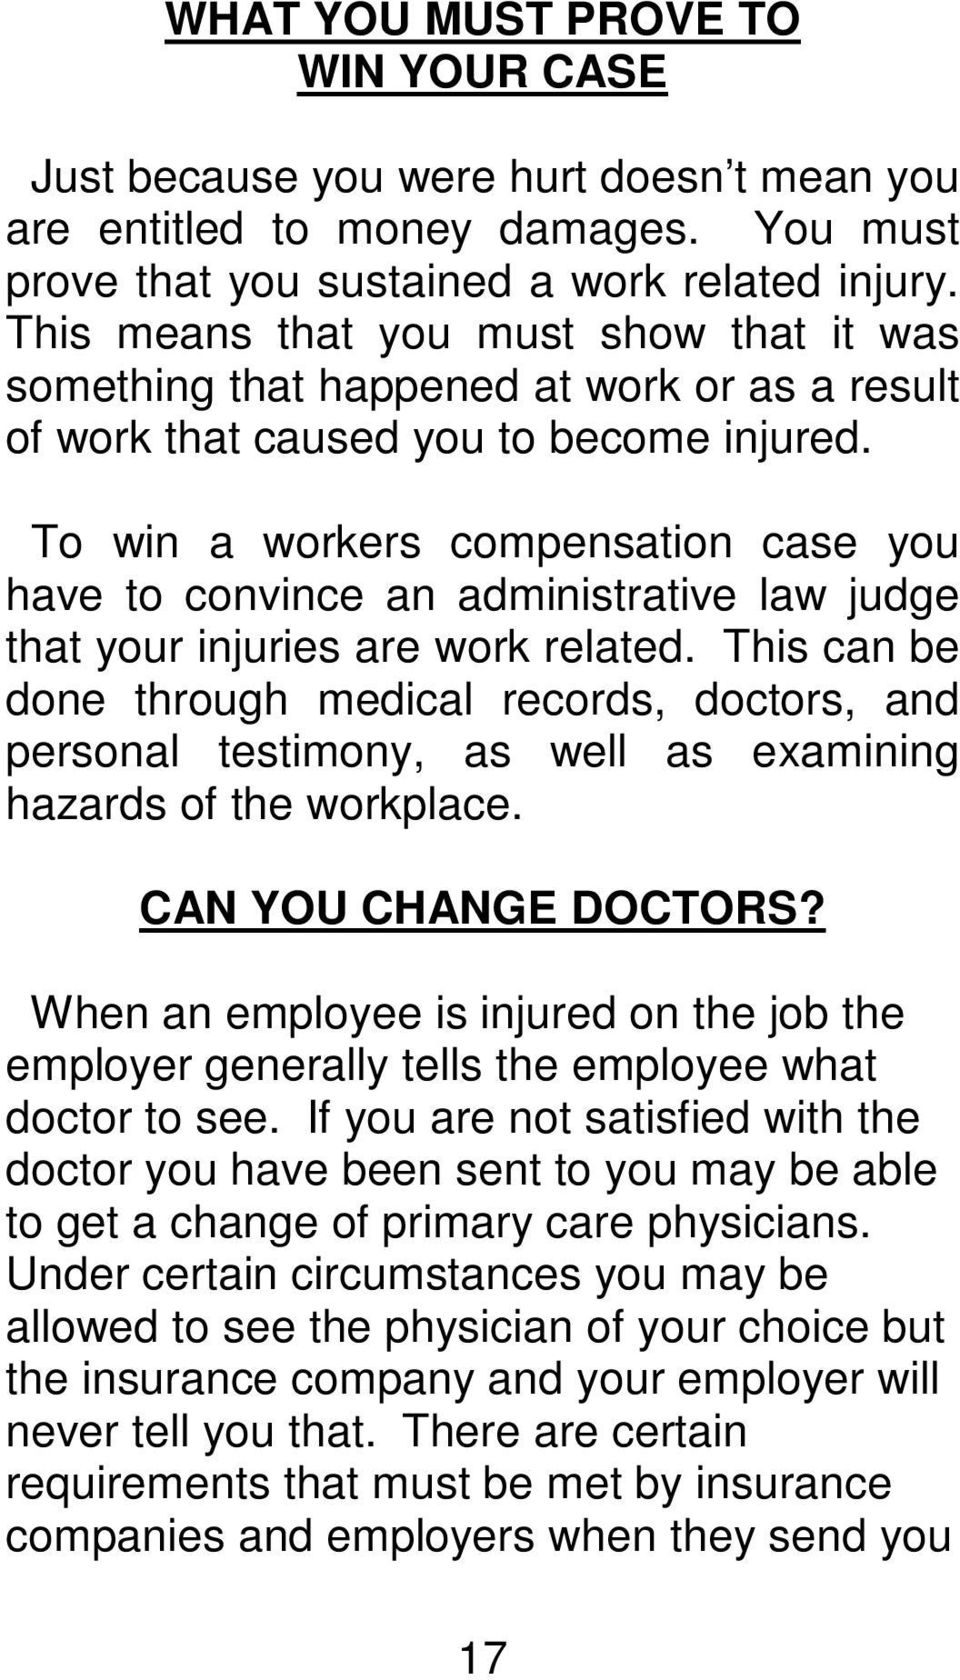 To win a workers compensation case you have to convince an administrative law judge that your injuries are work related.